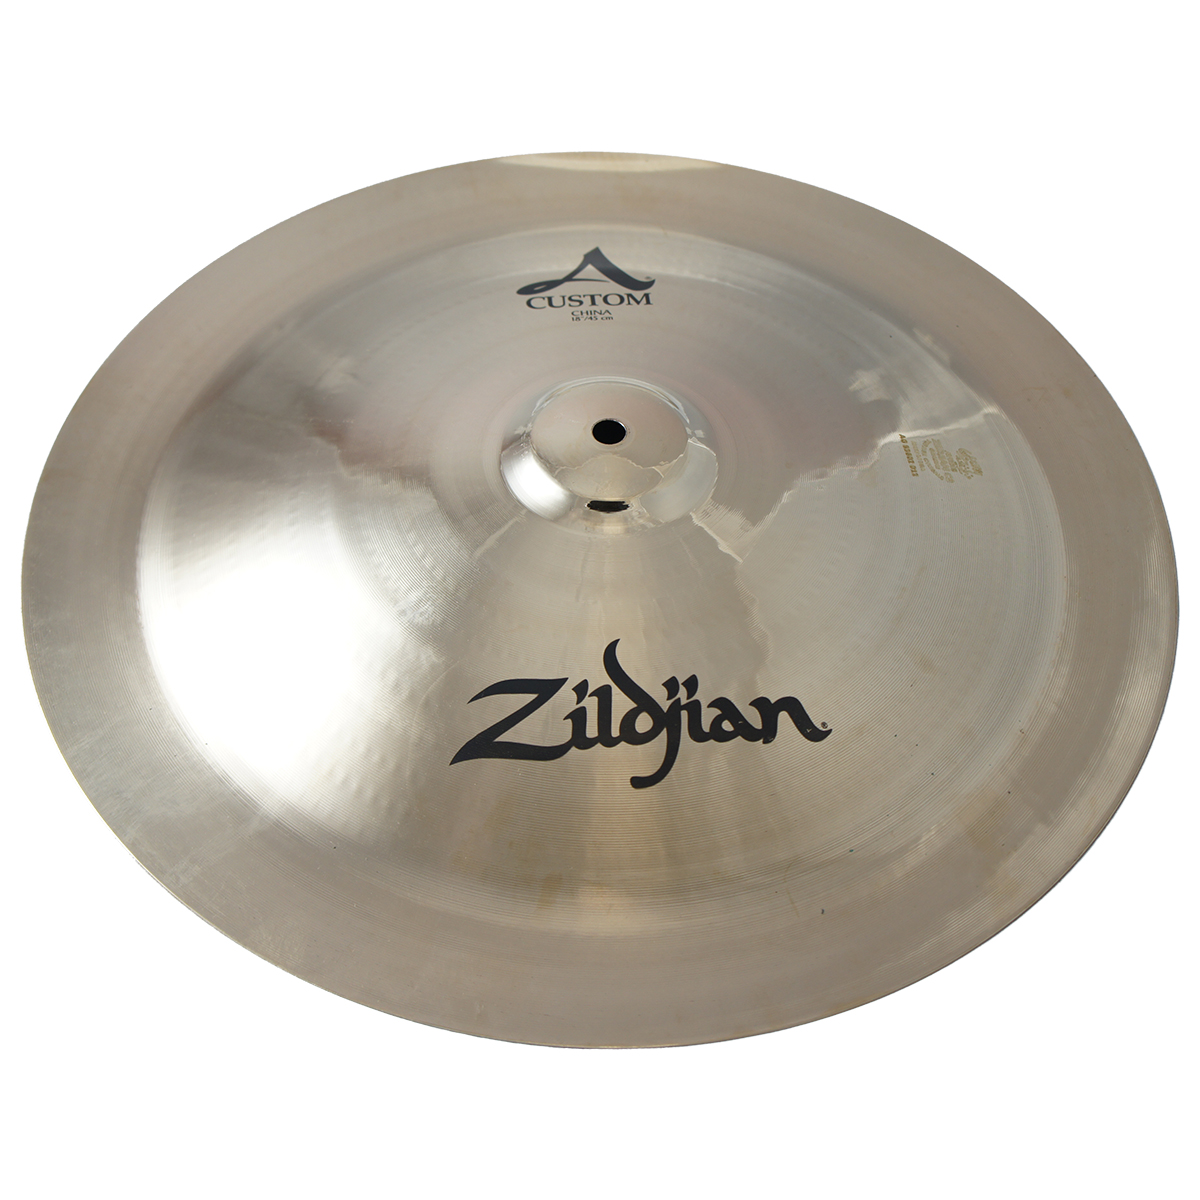 zildjian 20529 18 custom china cast bronze cymbal with mid to high pitch used 642388107256 ebay. Black Bedroom Furniture Sets. Home Design Ideas